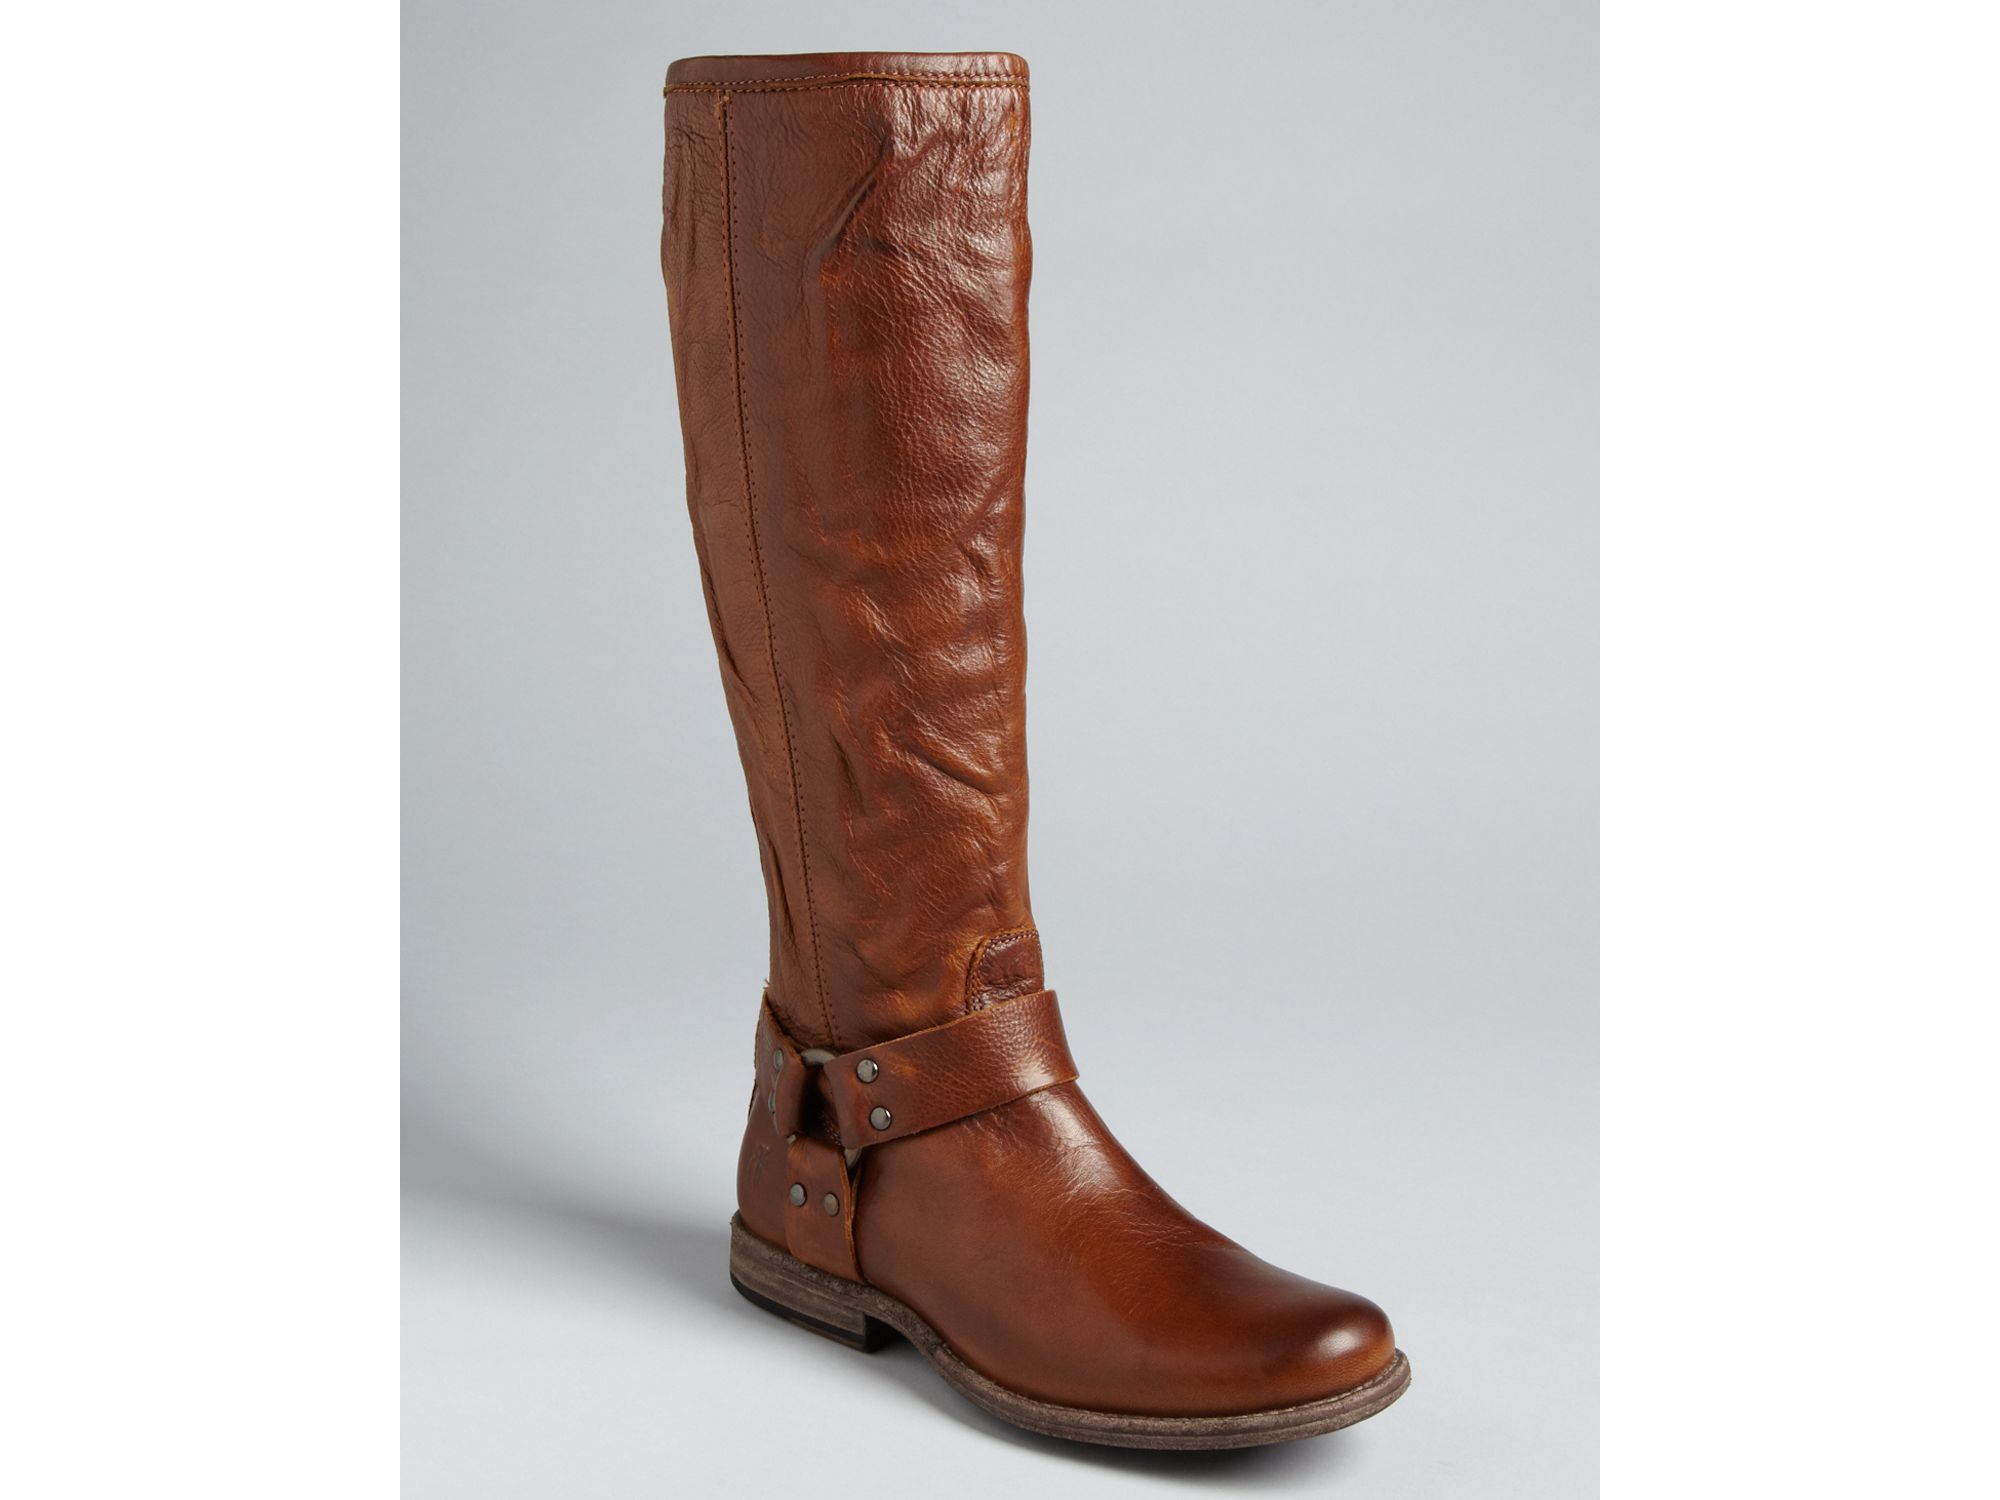 frye cognac flat boots phillip harness tall extended width brown product 0 342462581 normal lyst frye flat boots phillip harness tall extended width in brown